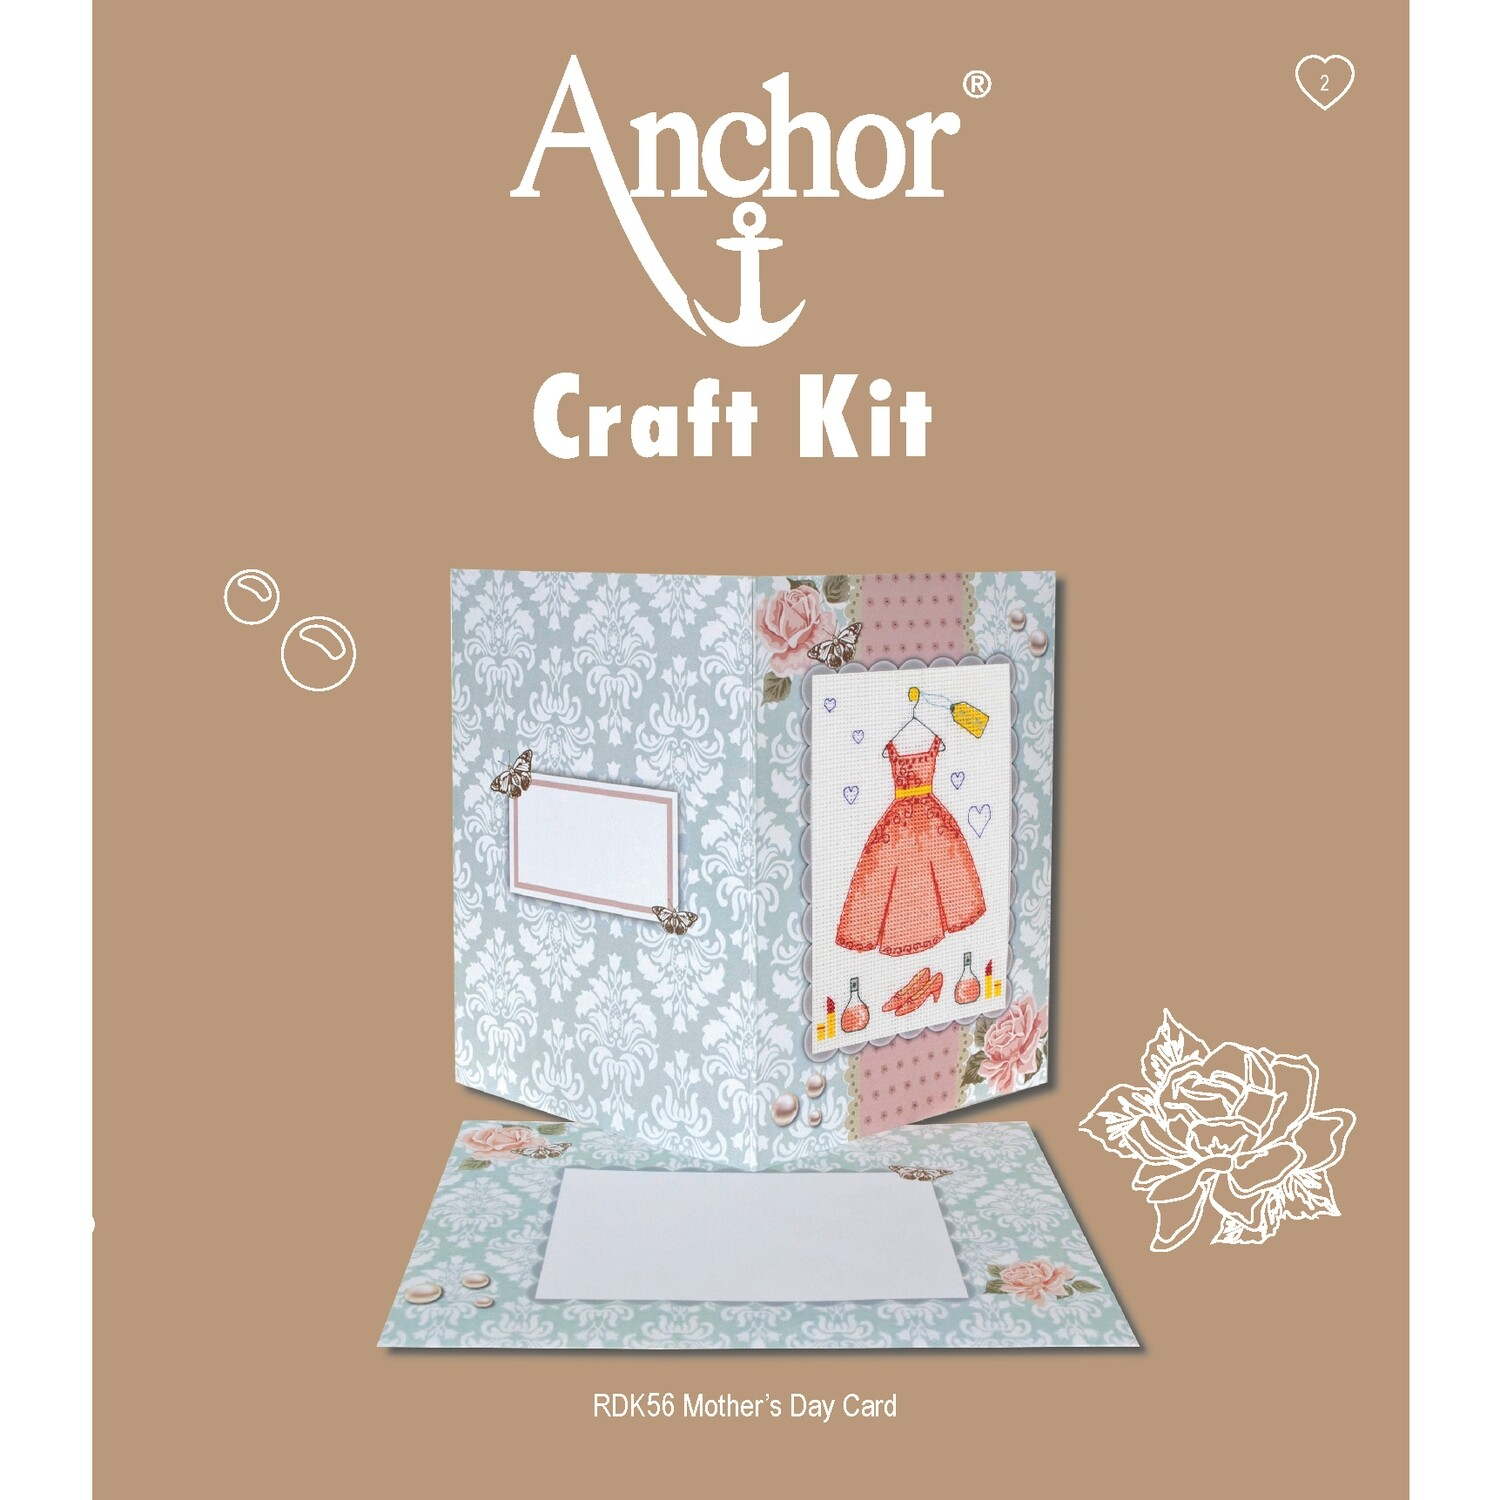 Anchor Craft Kit - Mother's Day Card